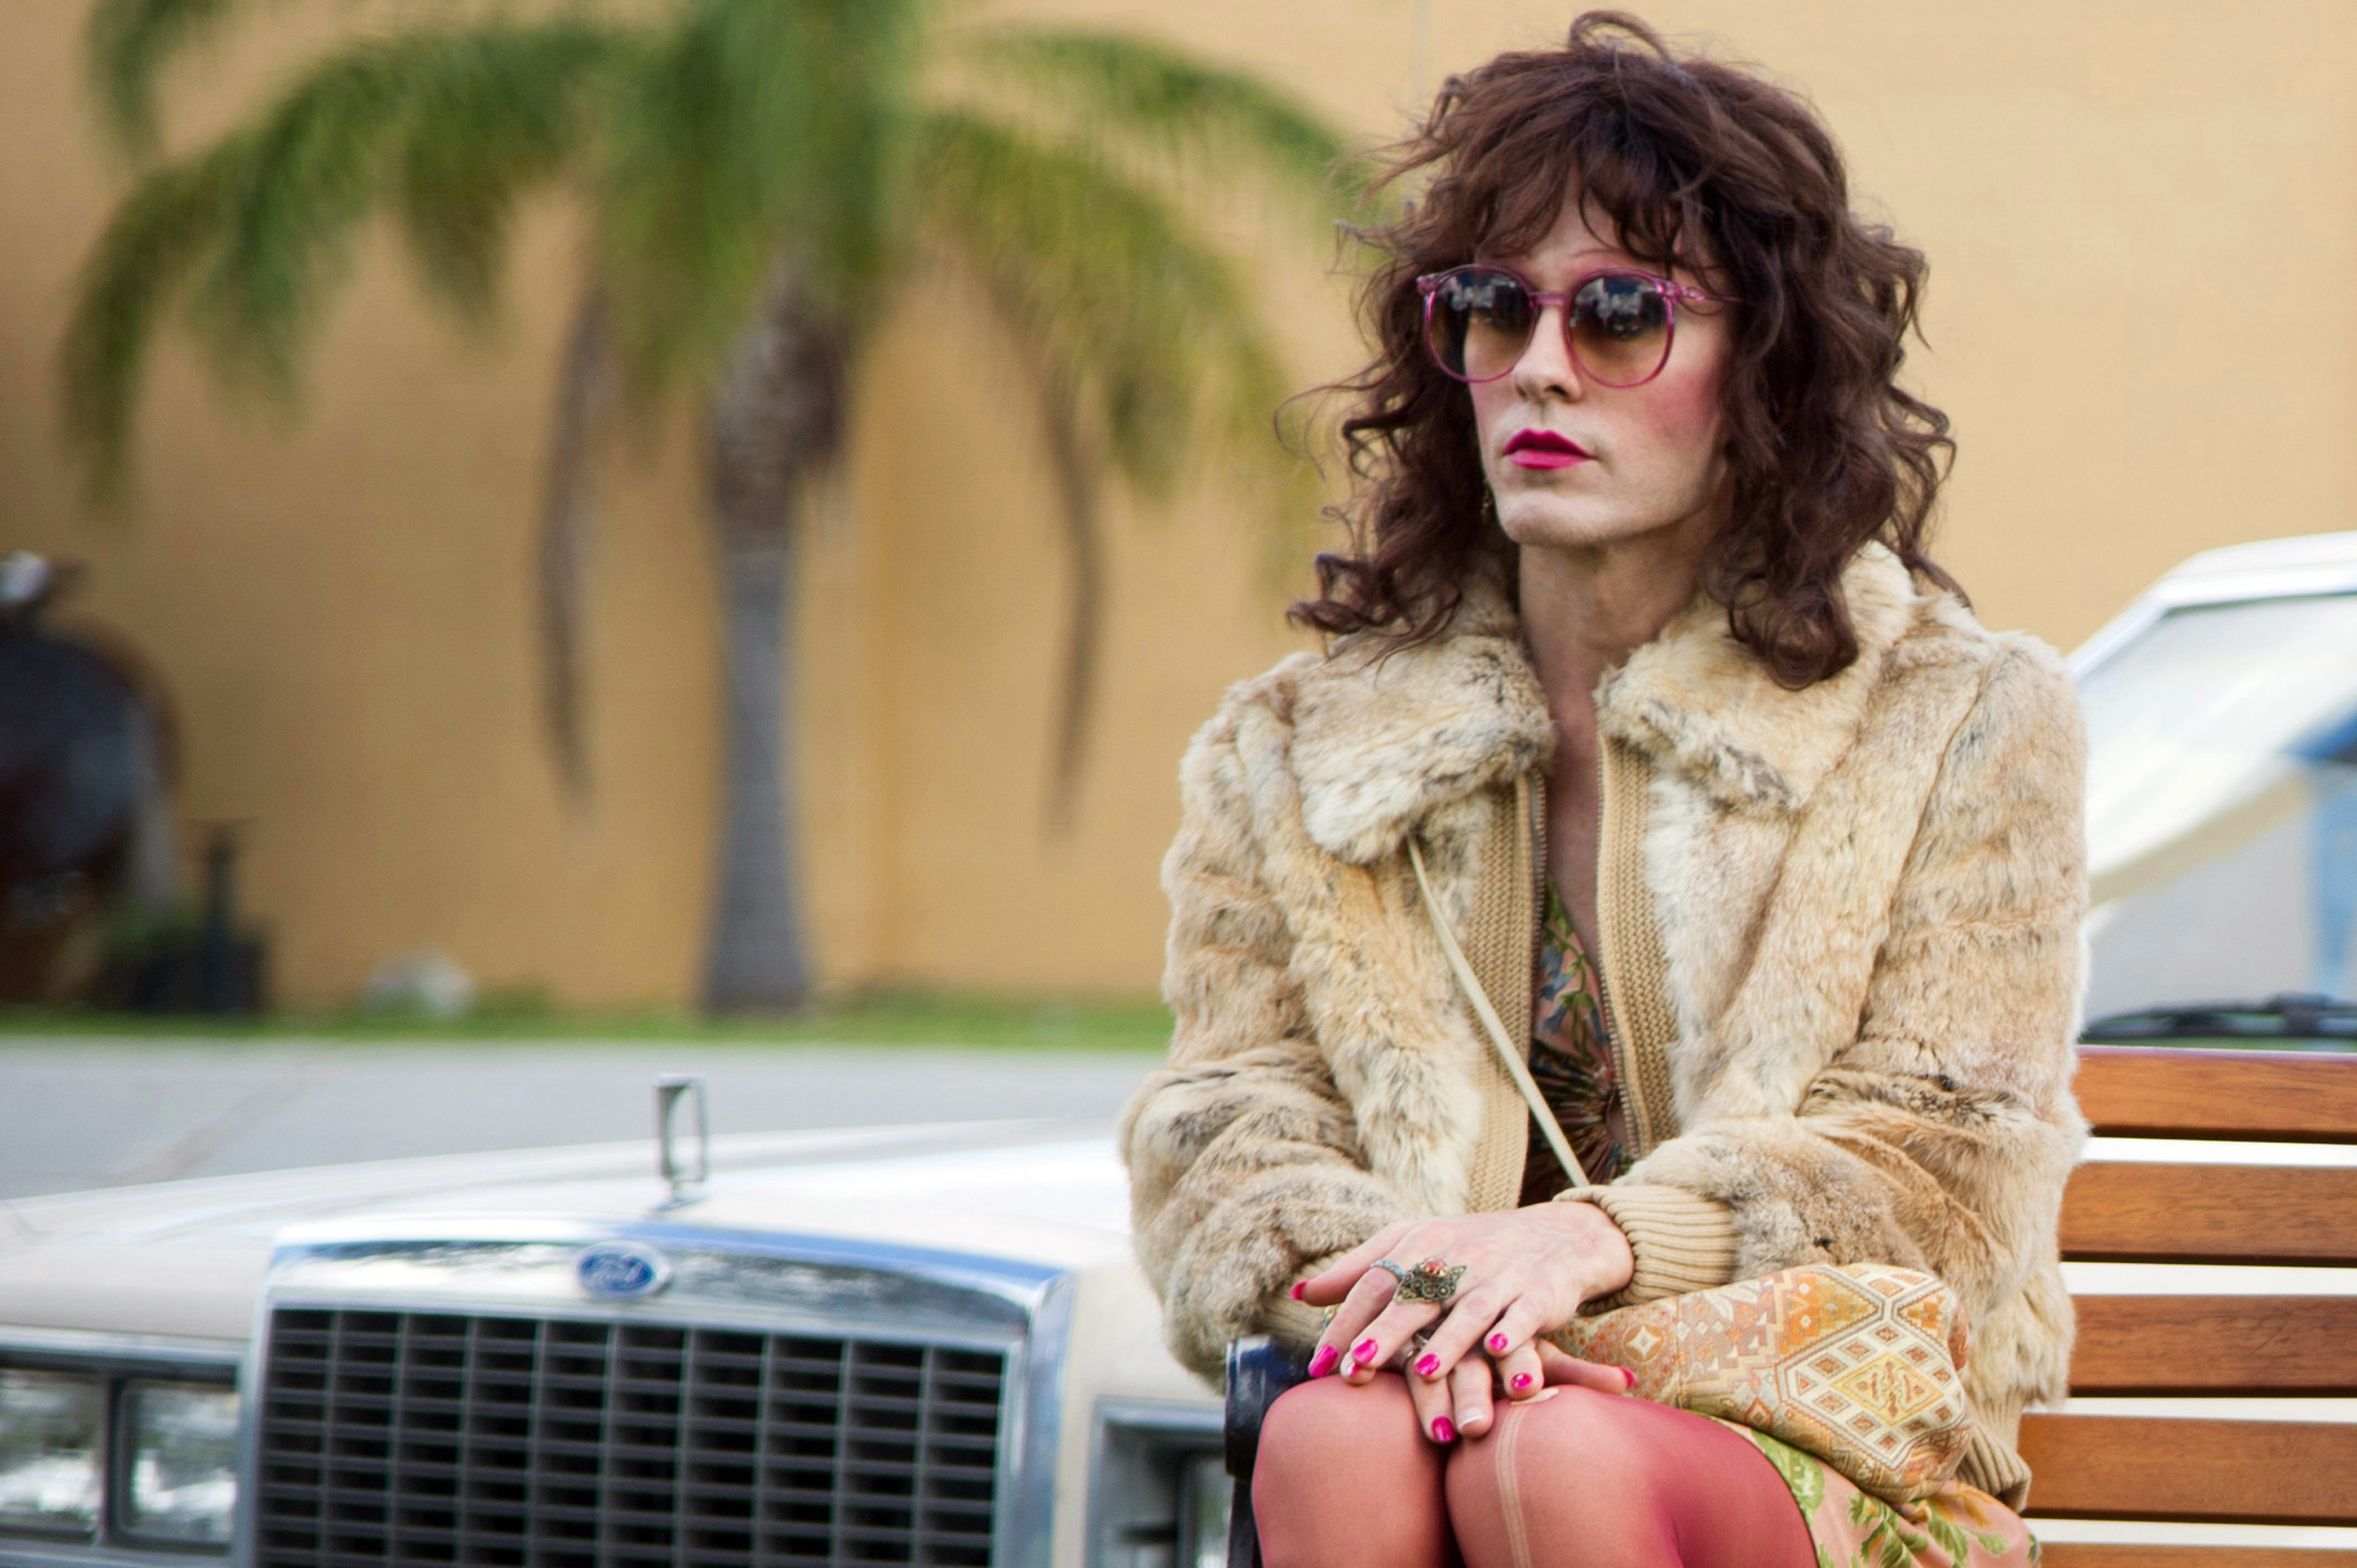 Jared Leto's character, Rayon, sits on a bench in front of a car